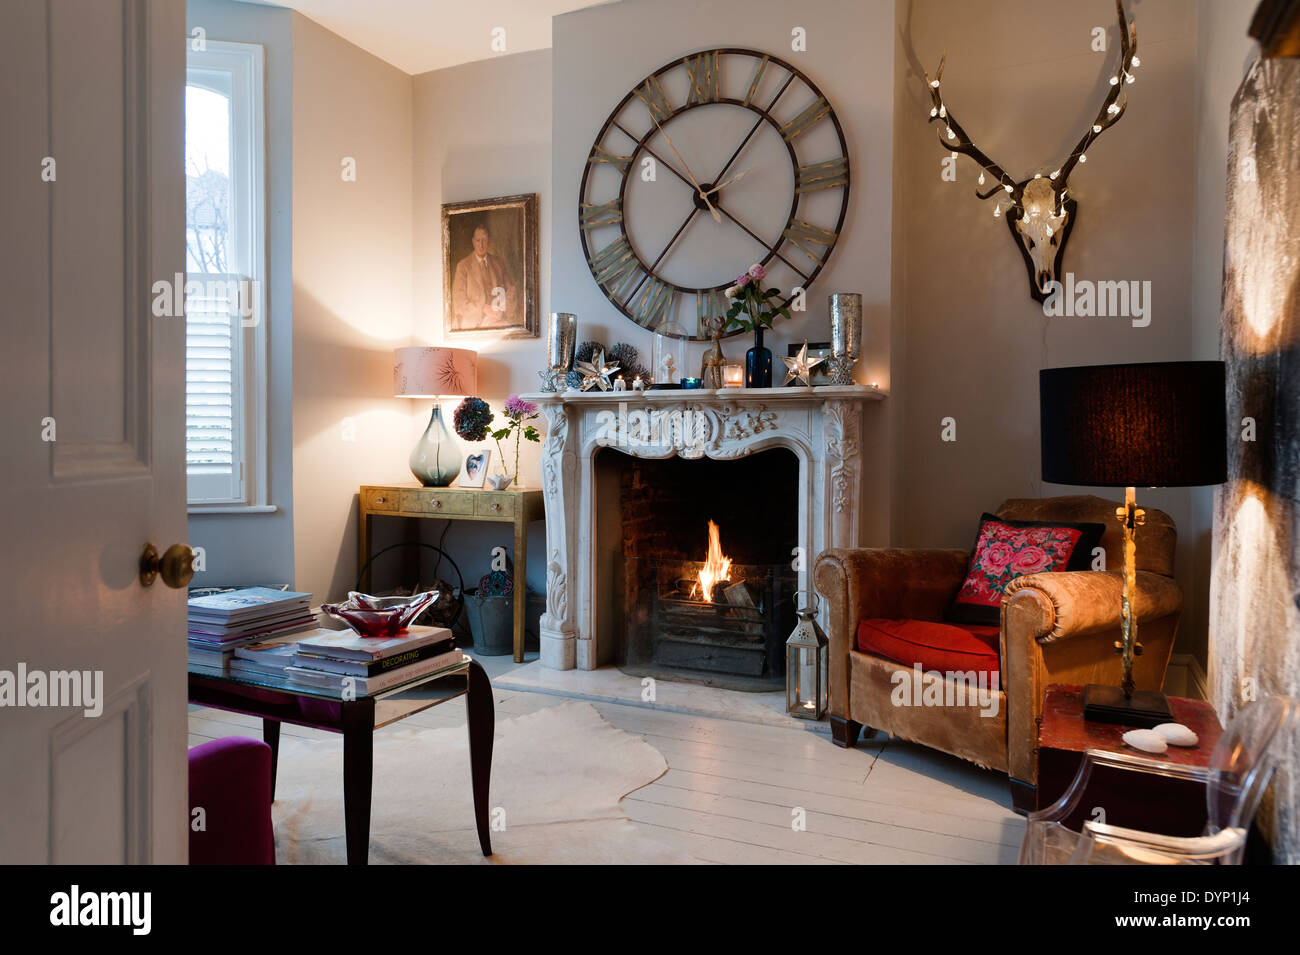 Royalty Free Image: 68711052 - Alamy